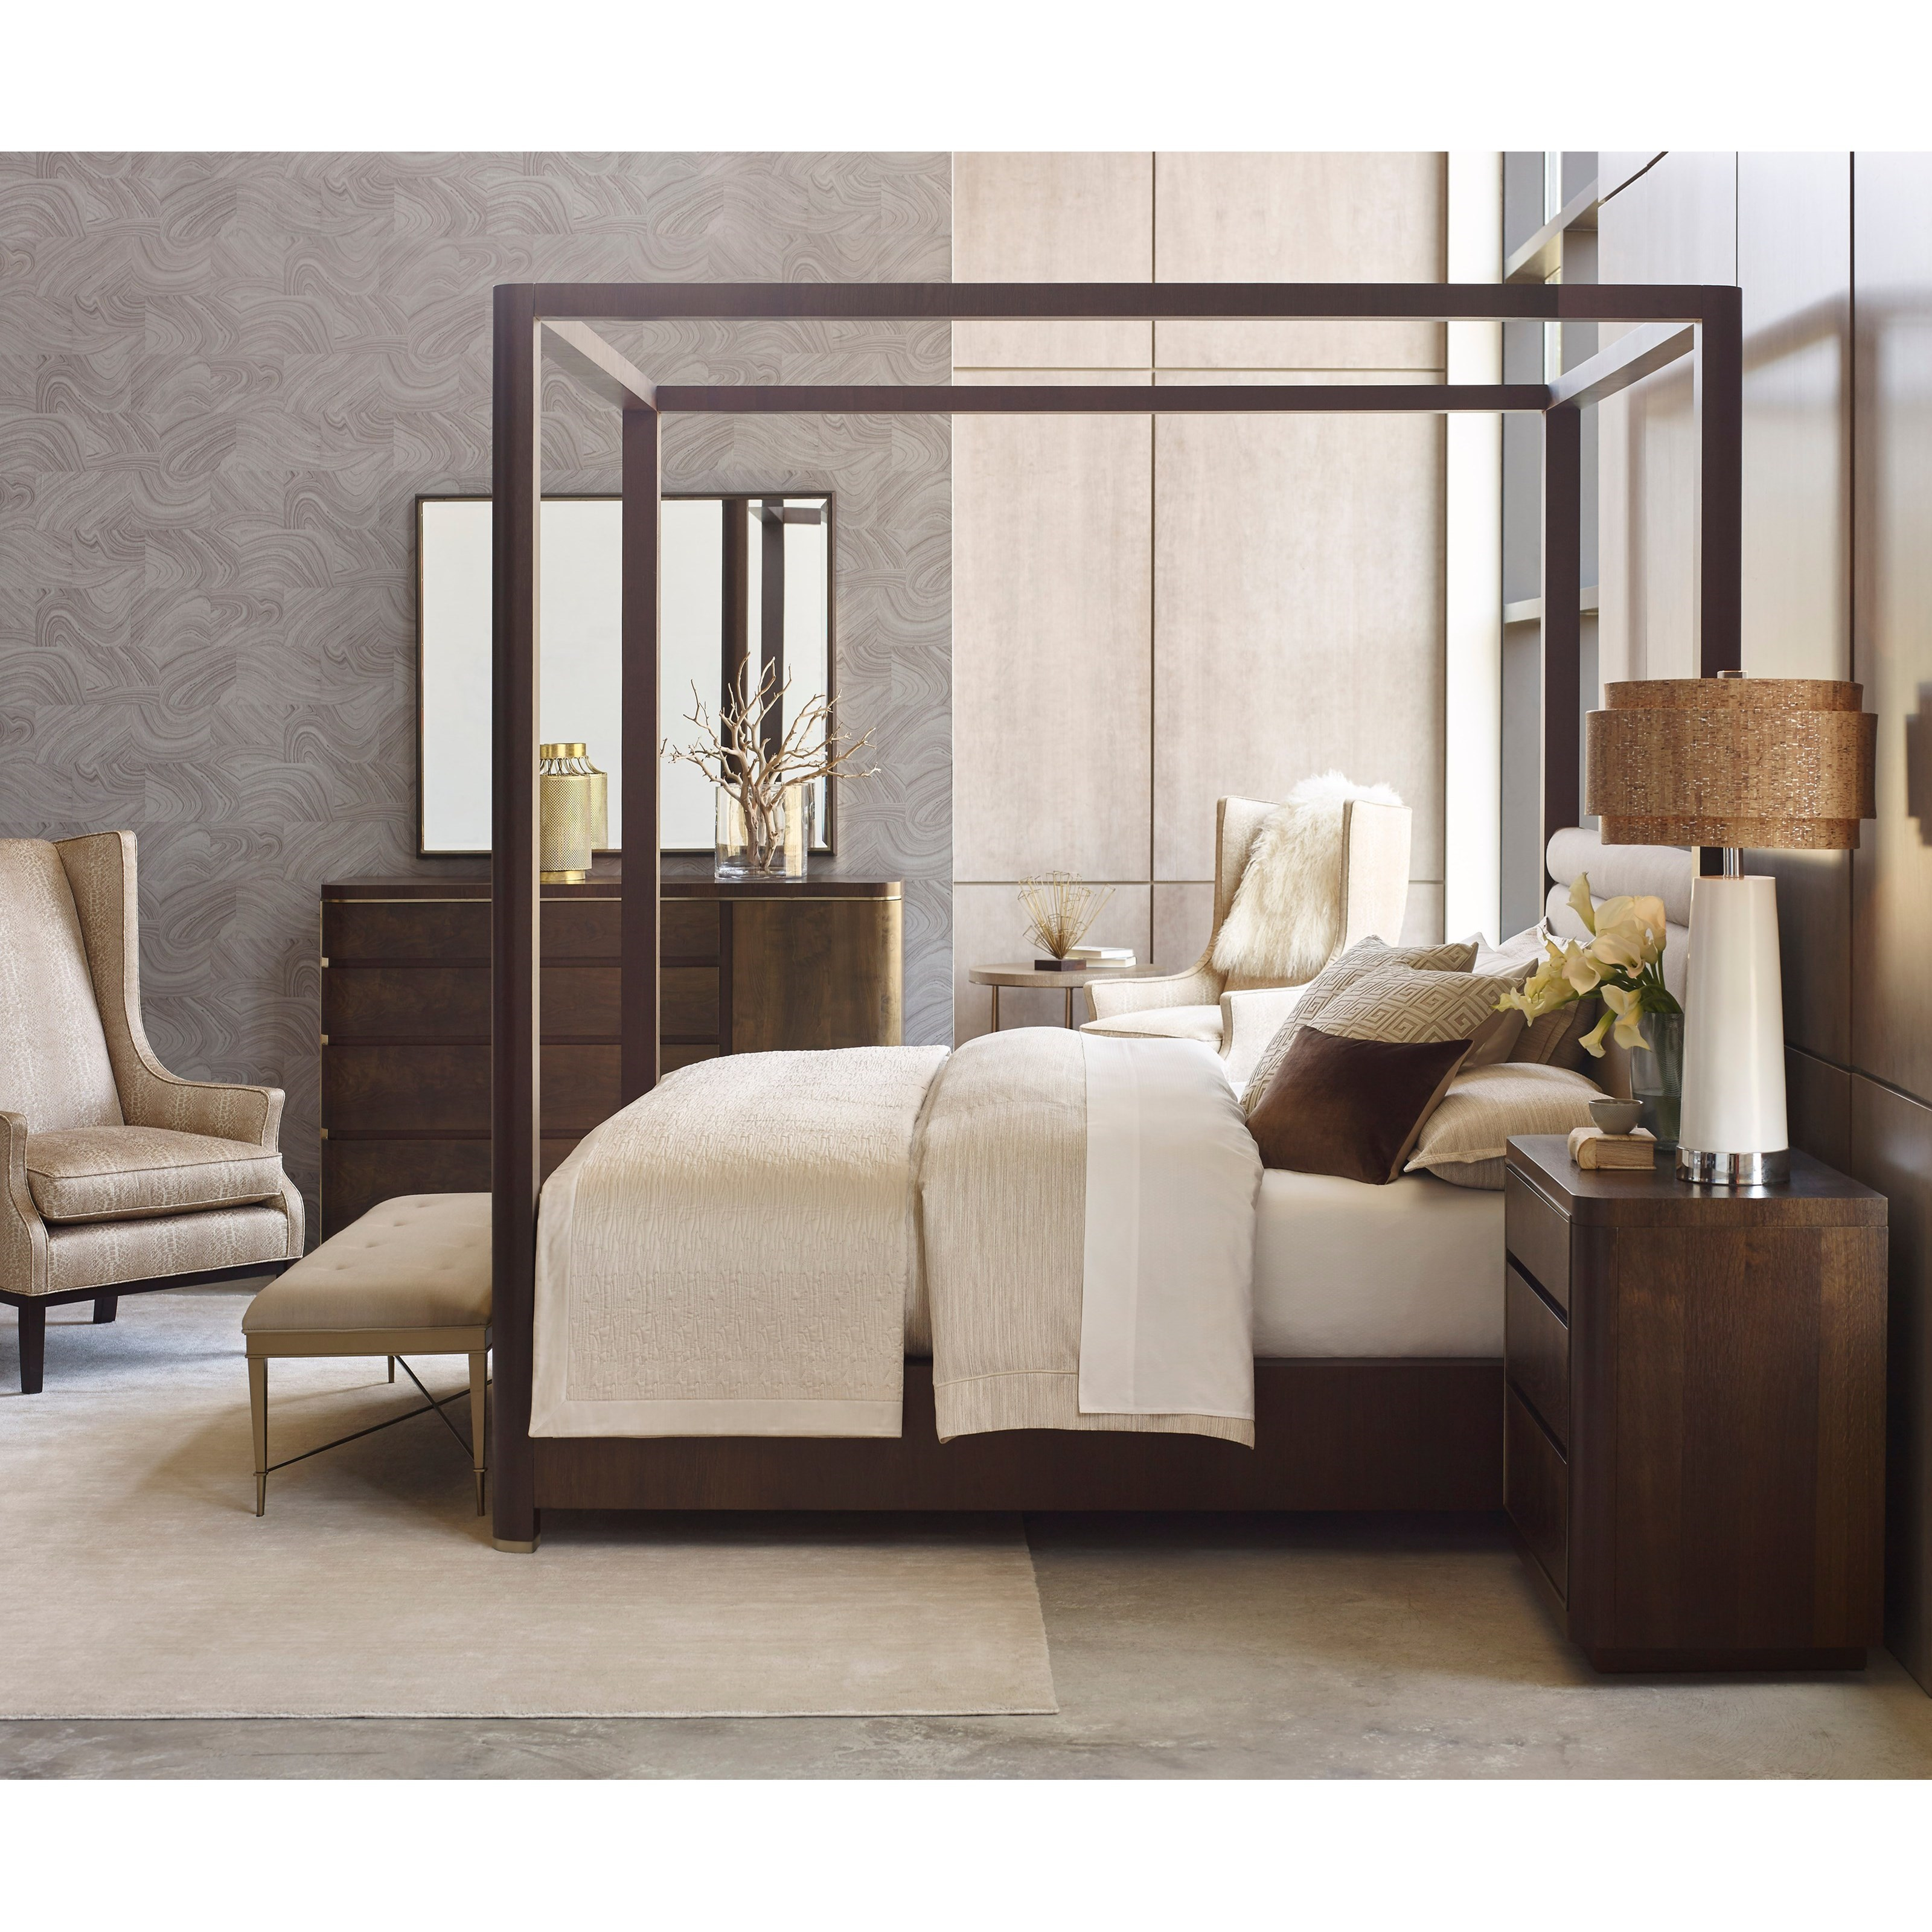 American Drew Ad Modern Organics King Bedroom Group - Item Number: 600 K Bedroom Group 2